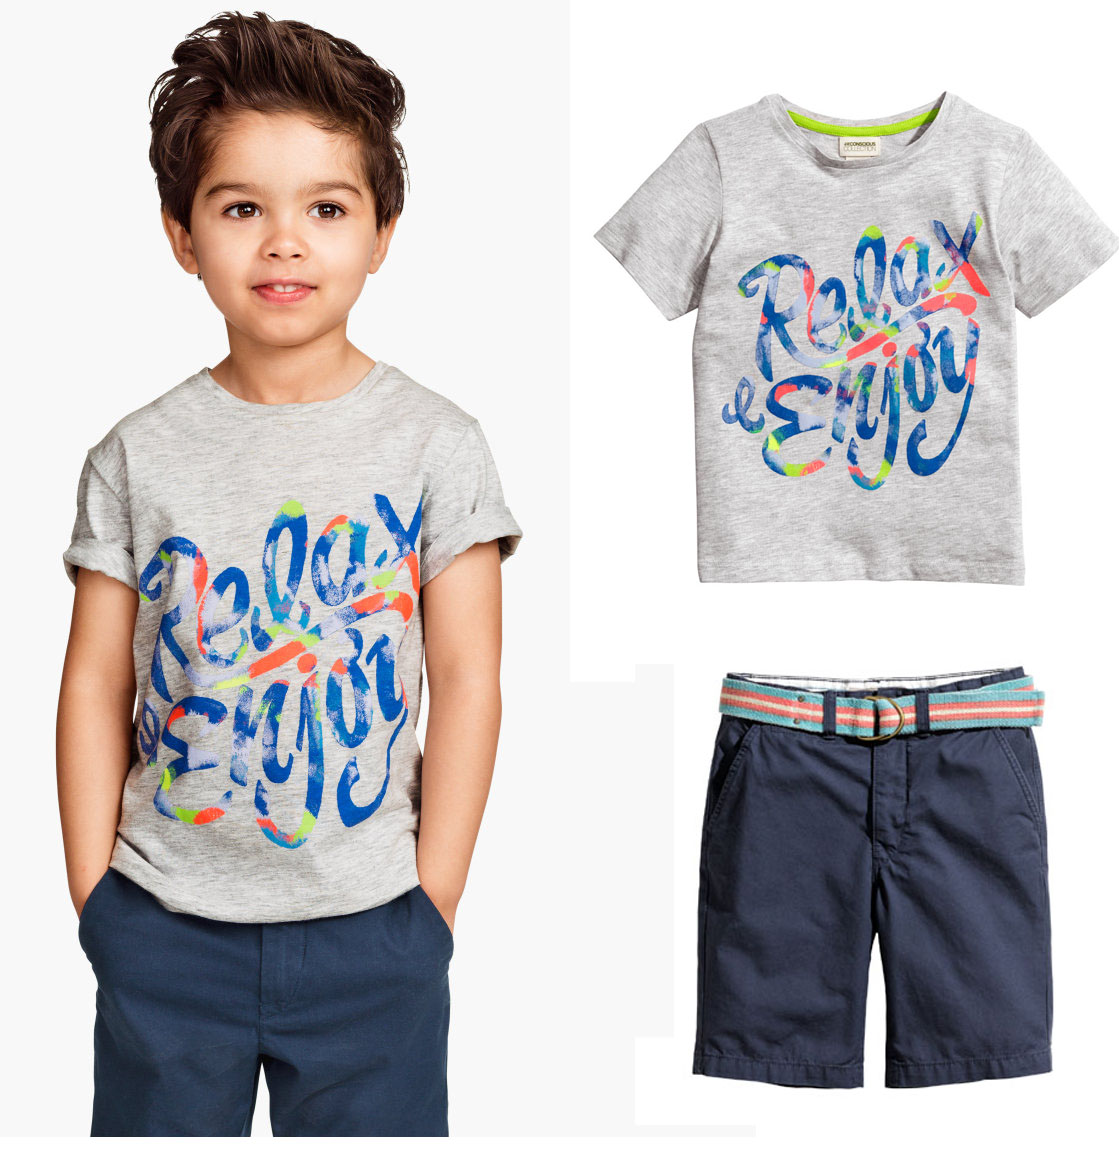 Buy Baby Boys Summer Clothing Sets Boy Brand Clothing Set Kid Apparel Children